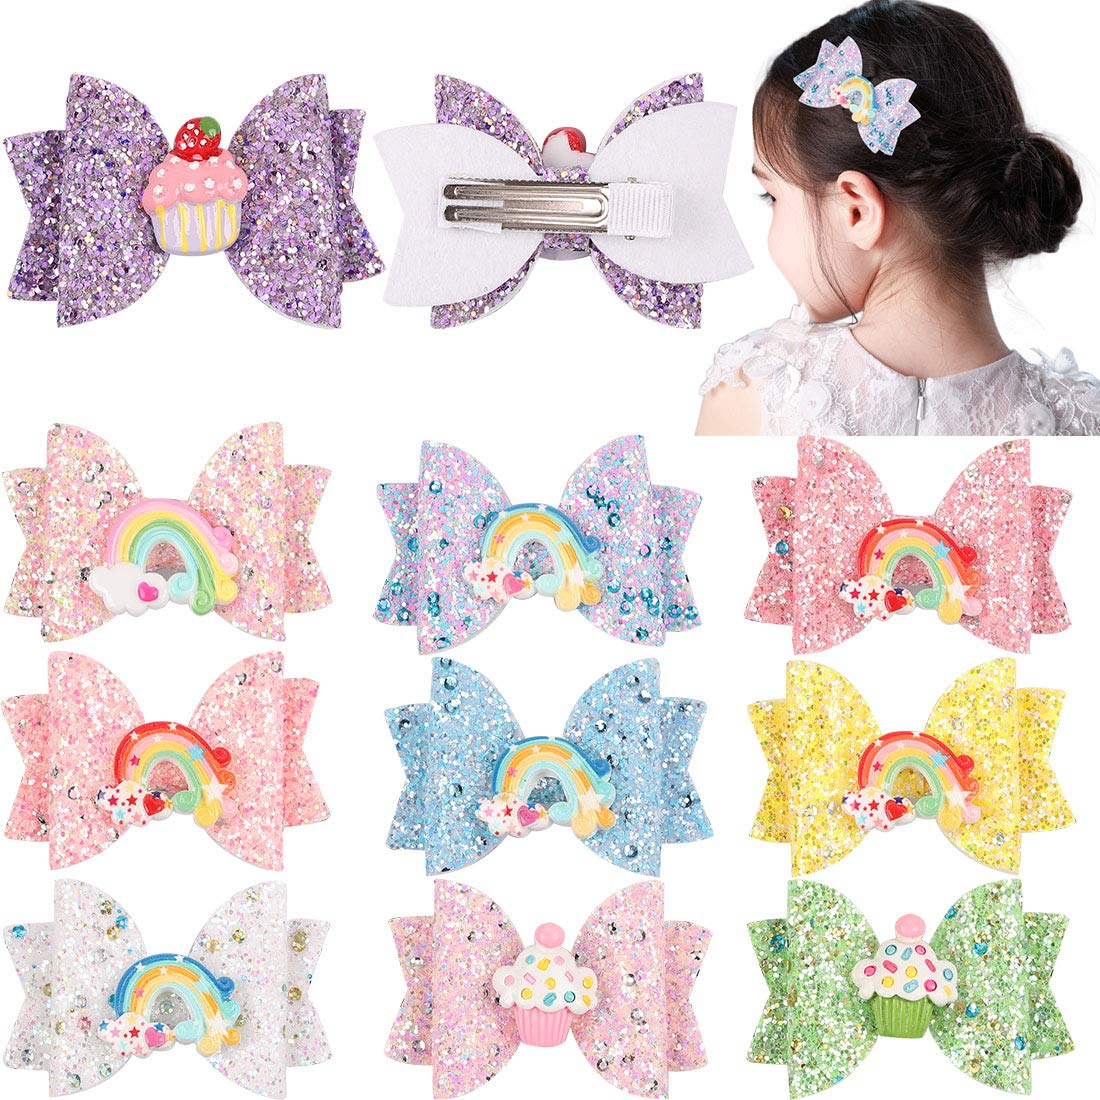 Hair Bows Double Layer Hair Bows for Girls Baby Girl Hair Bows Easter Bow